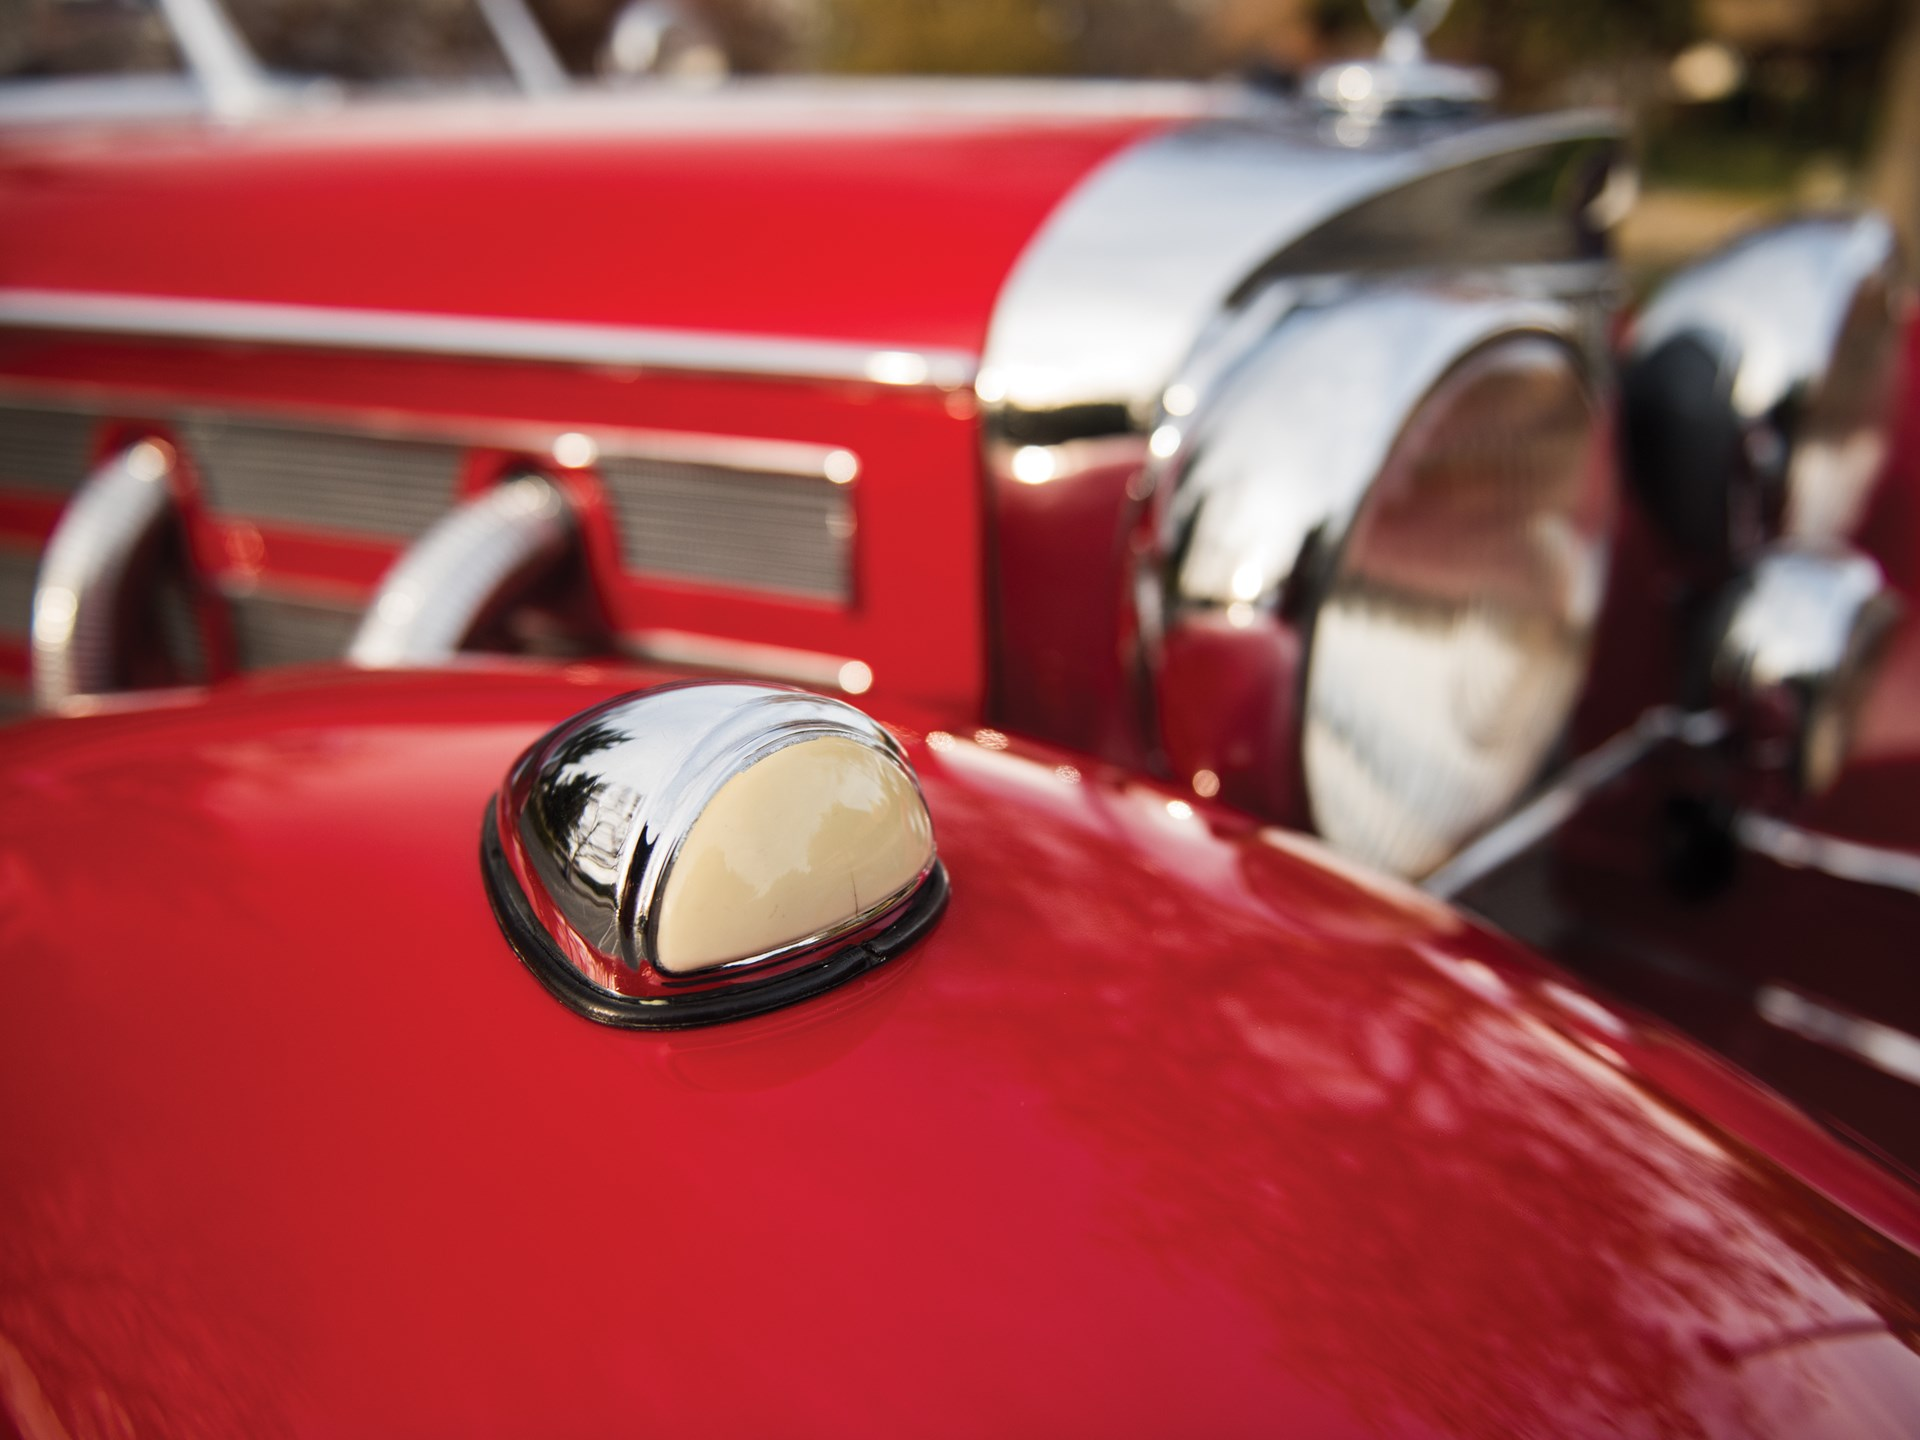 1937 Mercedes-Benz 540 K Special Roadster by Sindelfingen